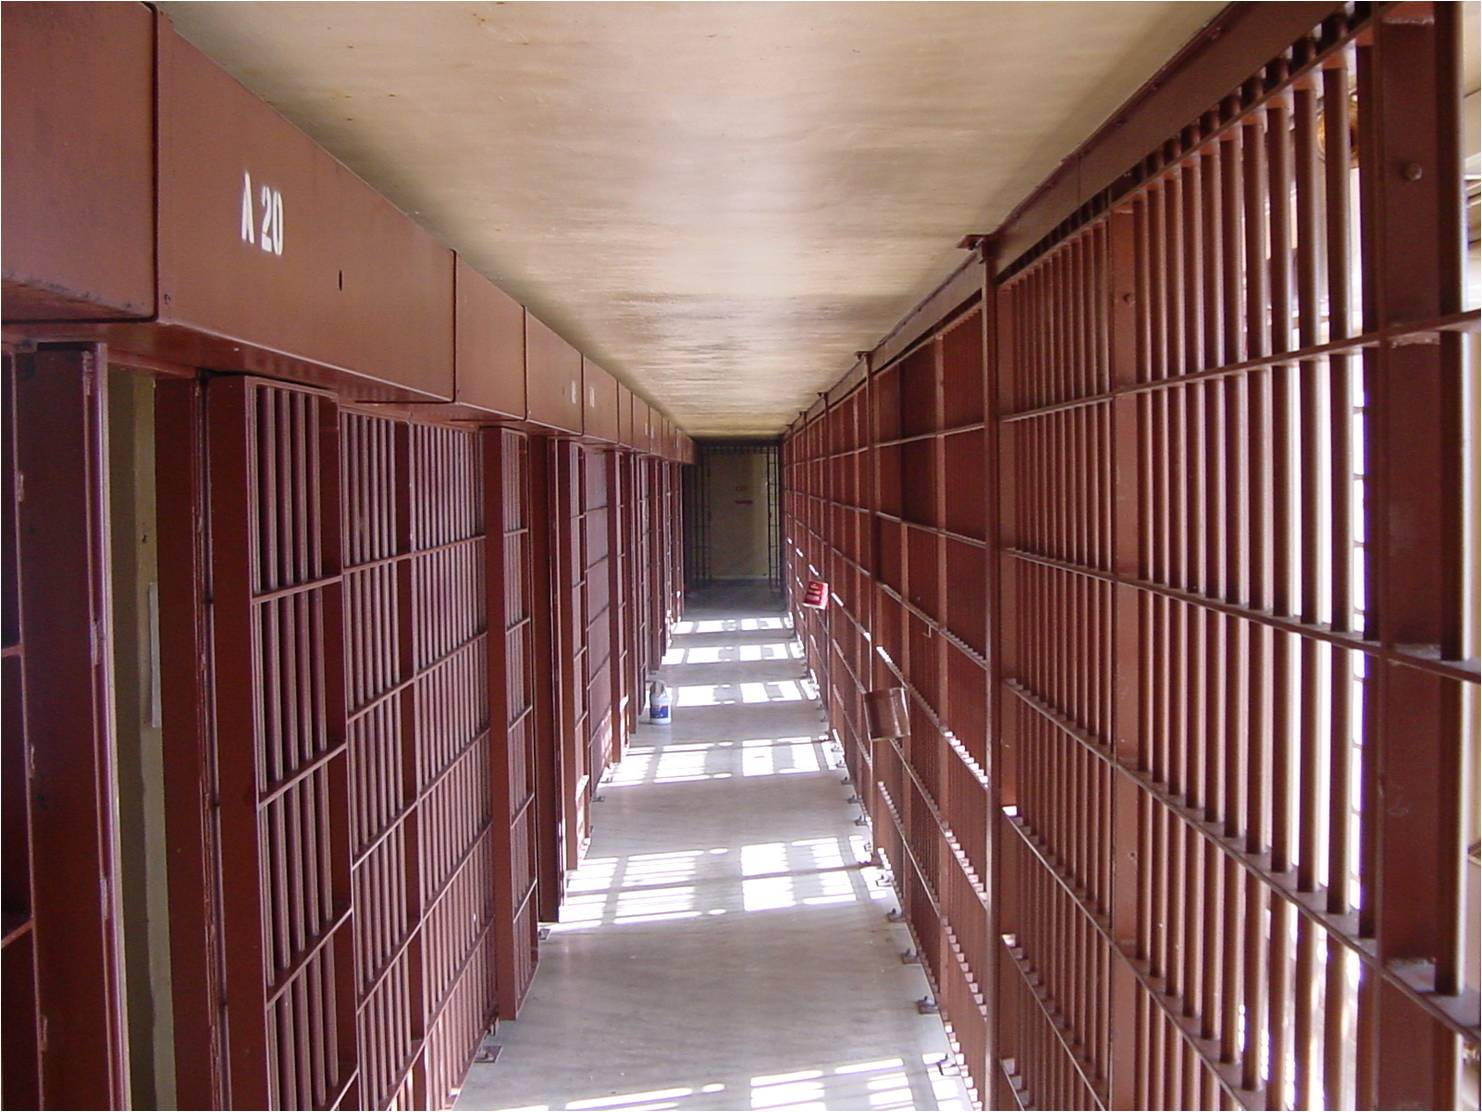 Nevada State Prison, A-Block Interior